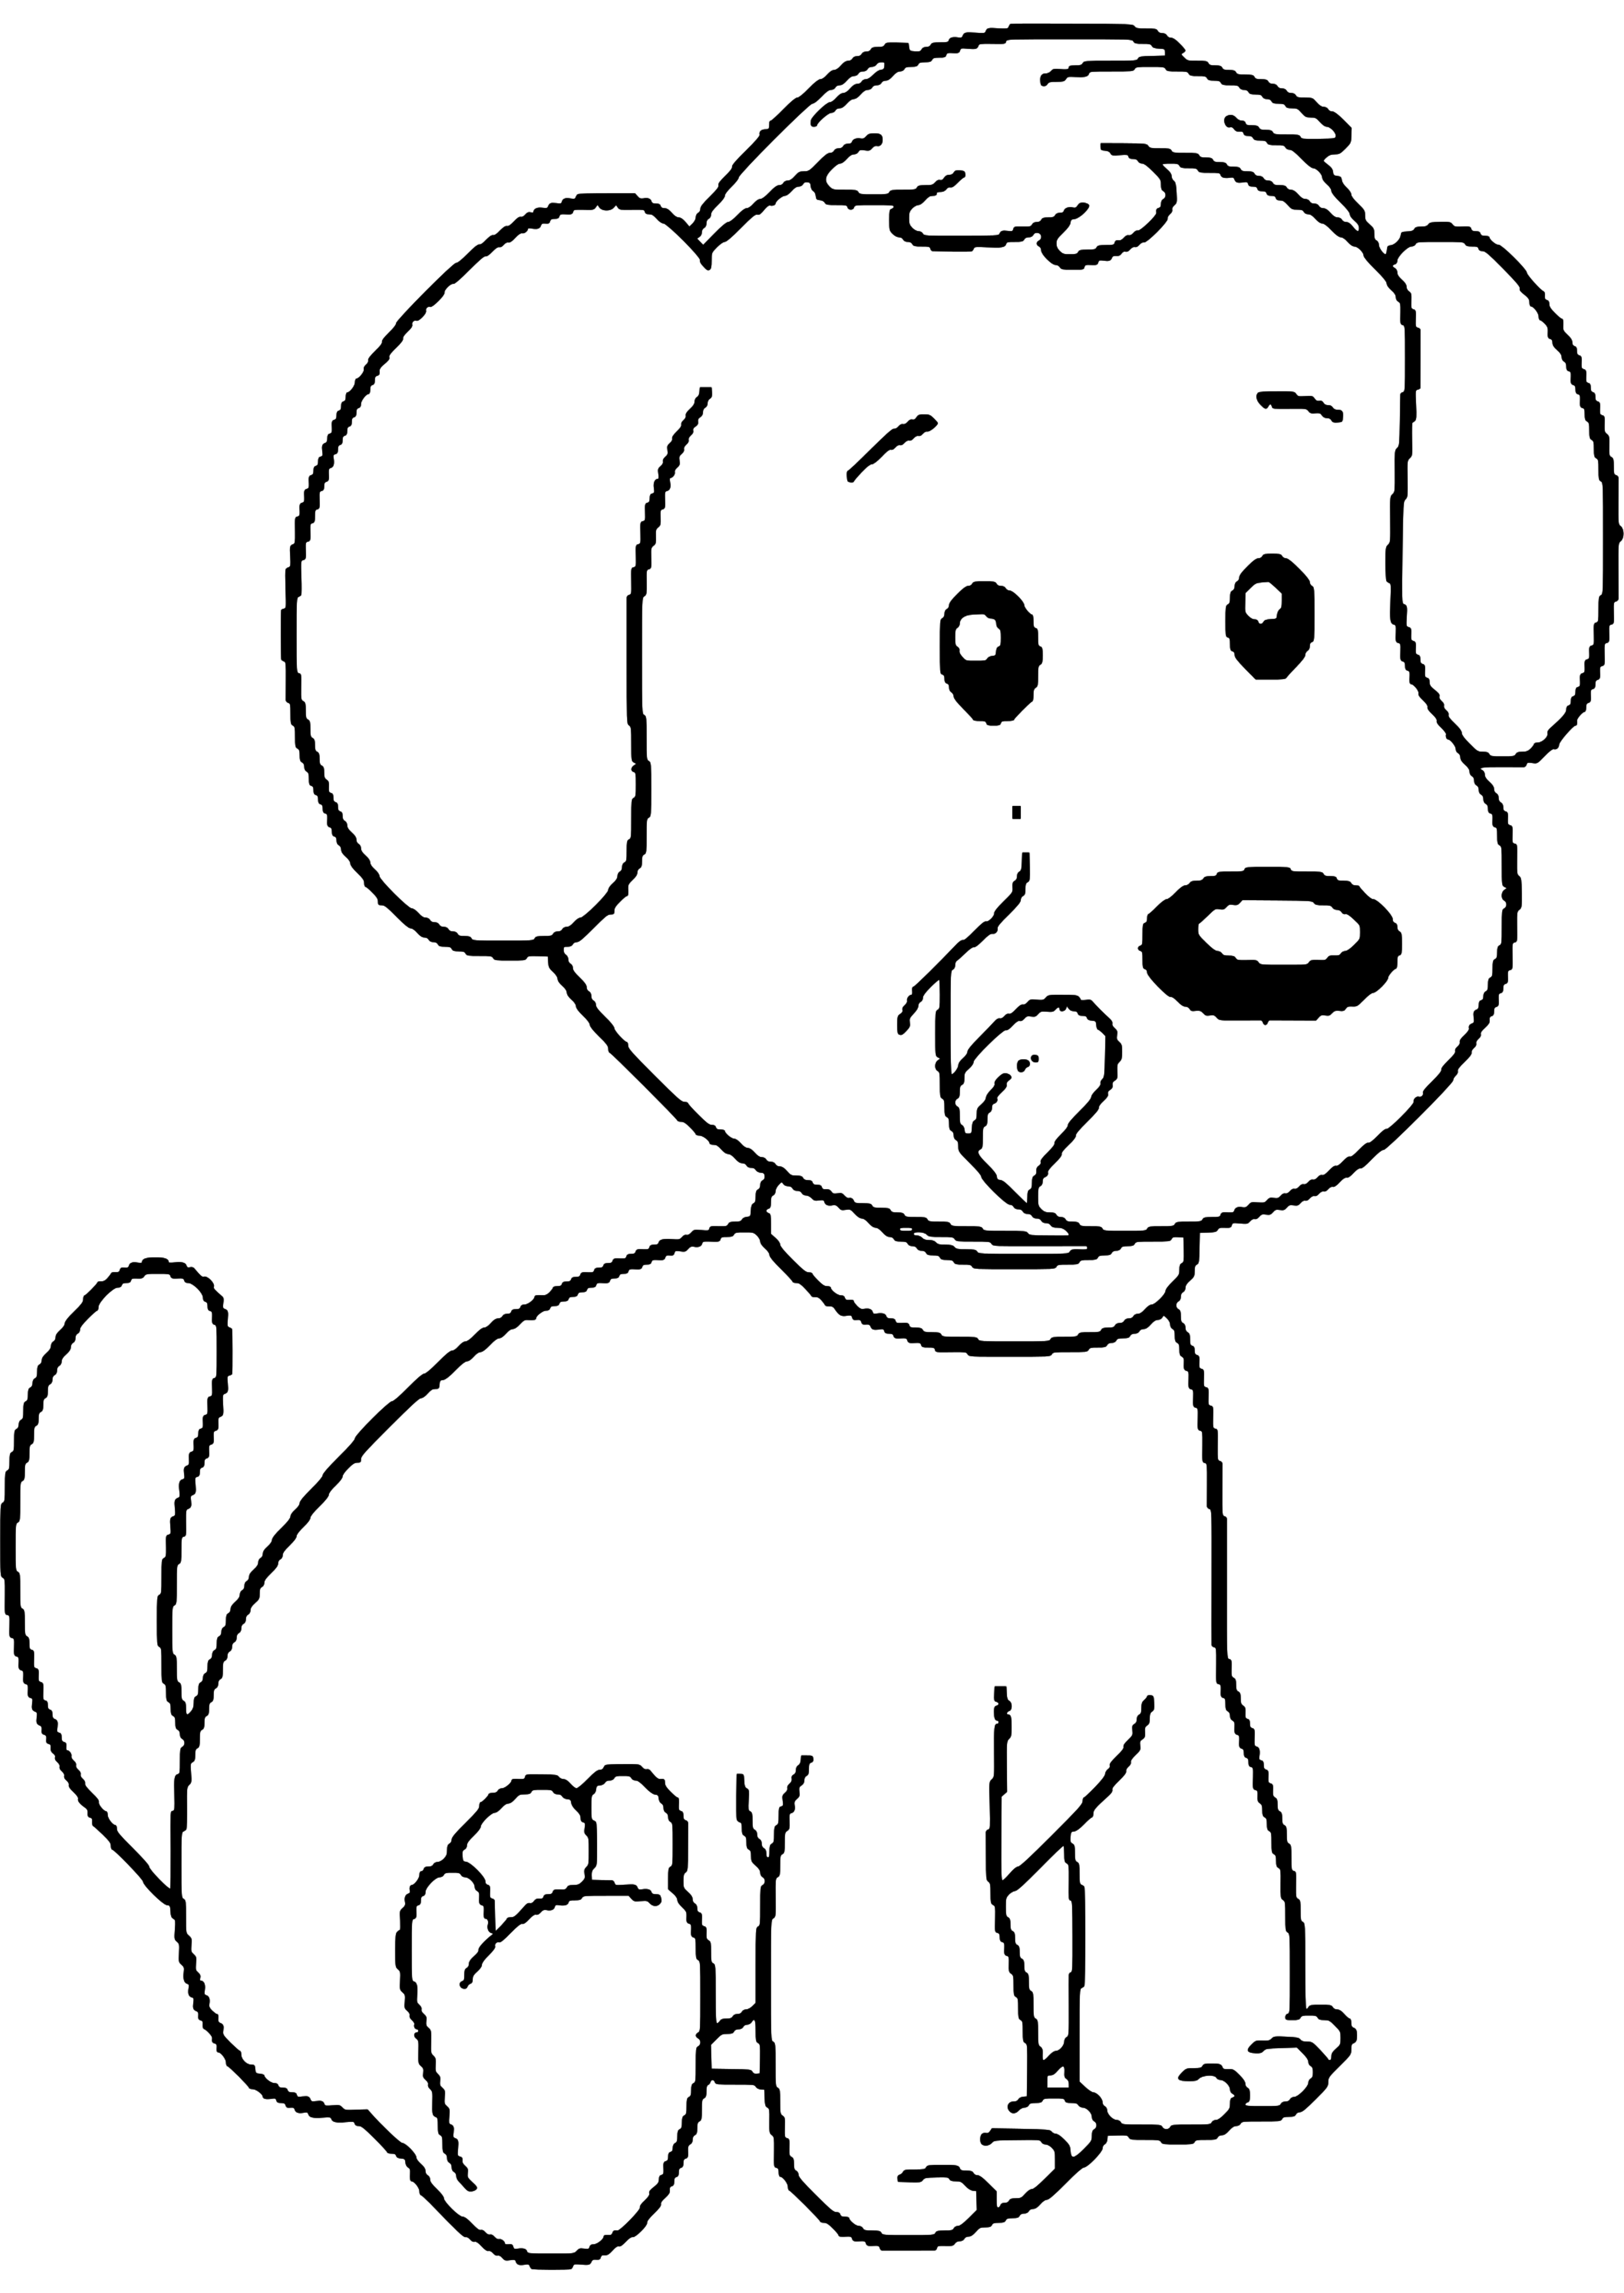 Tiere Ausmalen Ausmalbilder Tiere Wiese Embrodier Dog Coloring Page Coloring